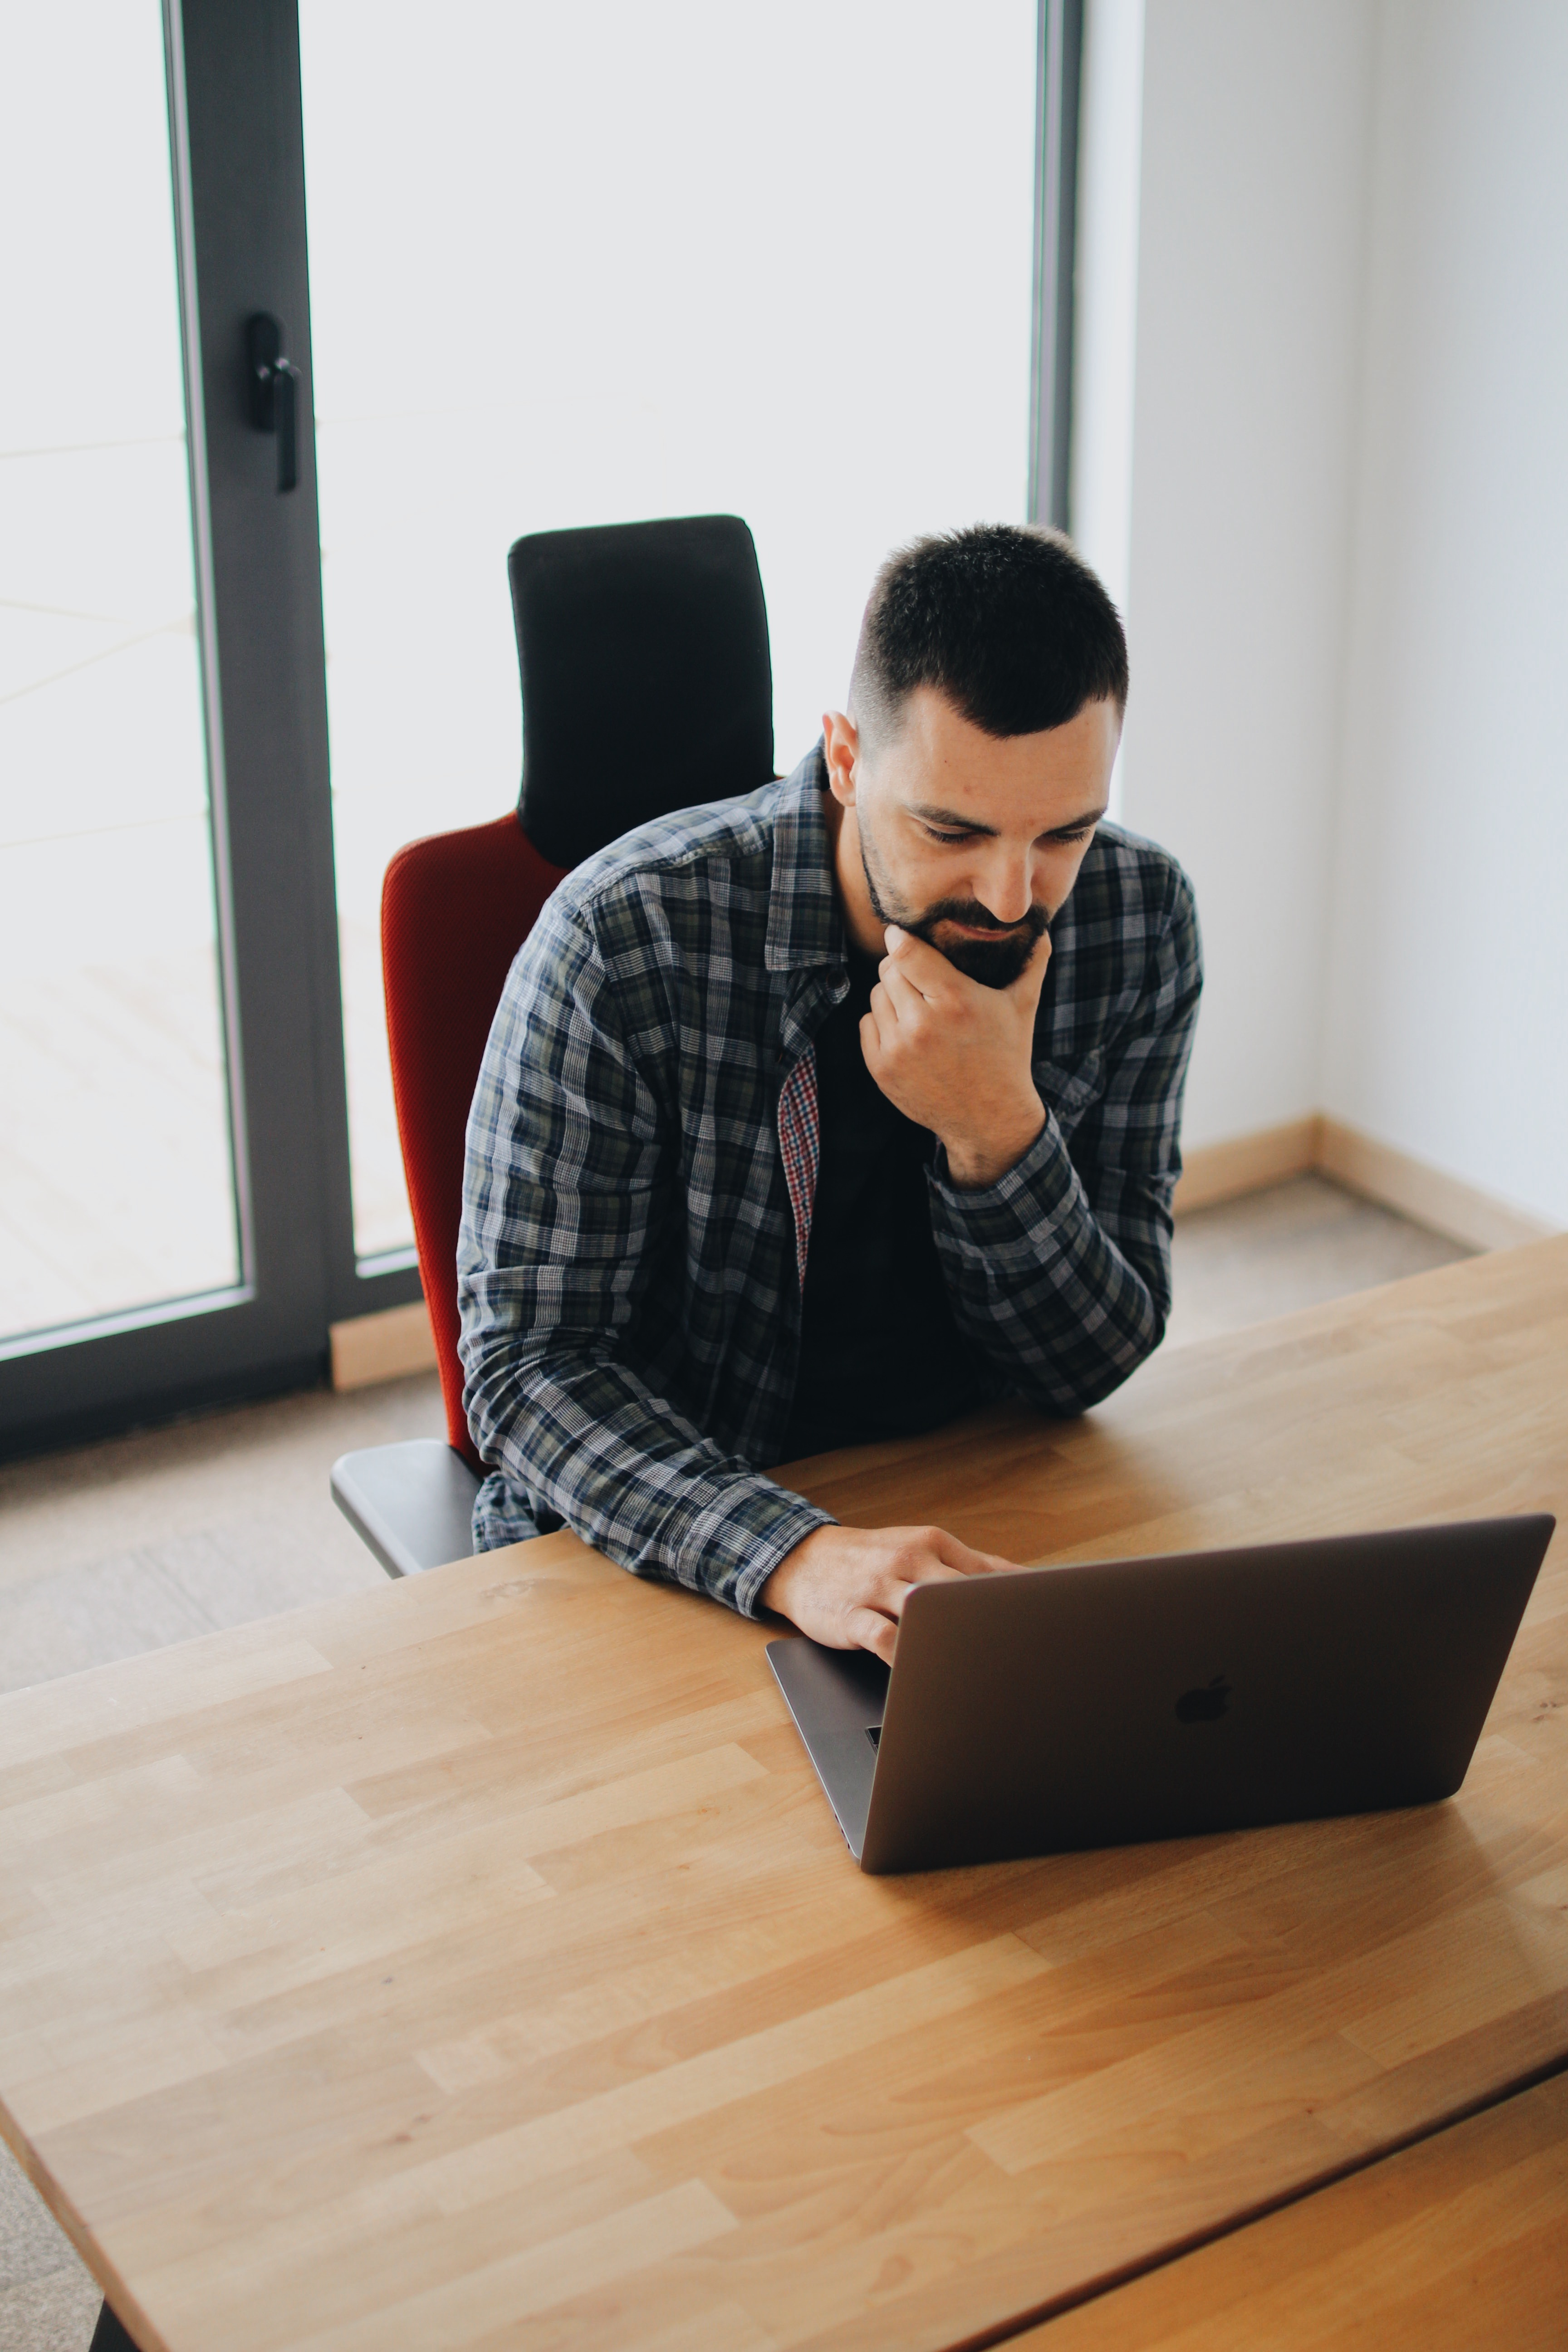 Man Using Laptop Computer  - pexels photo 2102415 - Do This Every Day to Build a Massive Brand on Instagram and Beyond